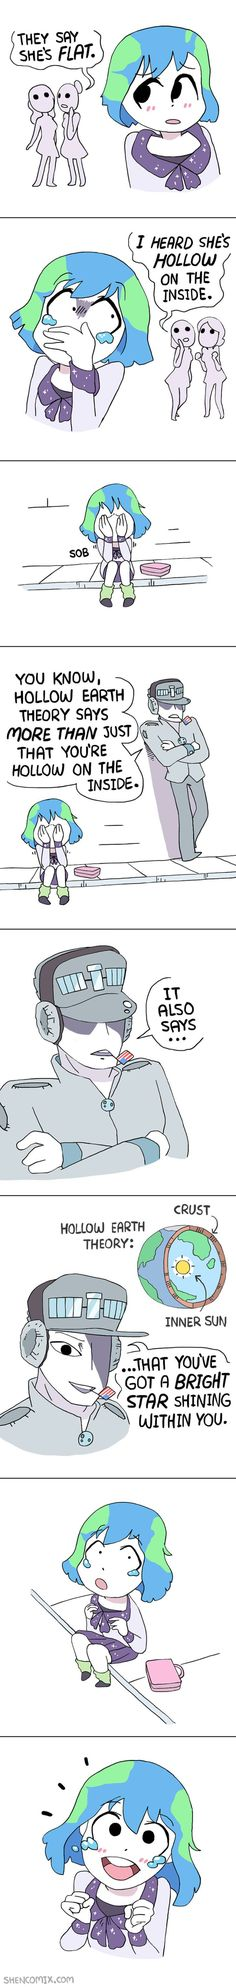 Tagged with cute, awesome, earth, not, flatearth; Earth-chan comics are the cutest thing Cute Comics, Funny Comics, Space Anime, Comics In English, Hetalia Funny, Anime Galaxy, Funny Comic Strips, Anime Furry, My Hero Academia Episodes